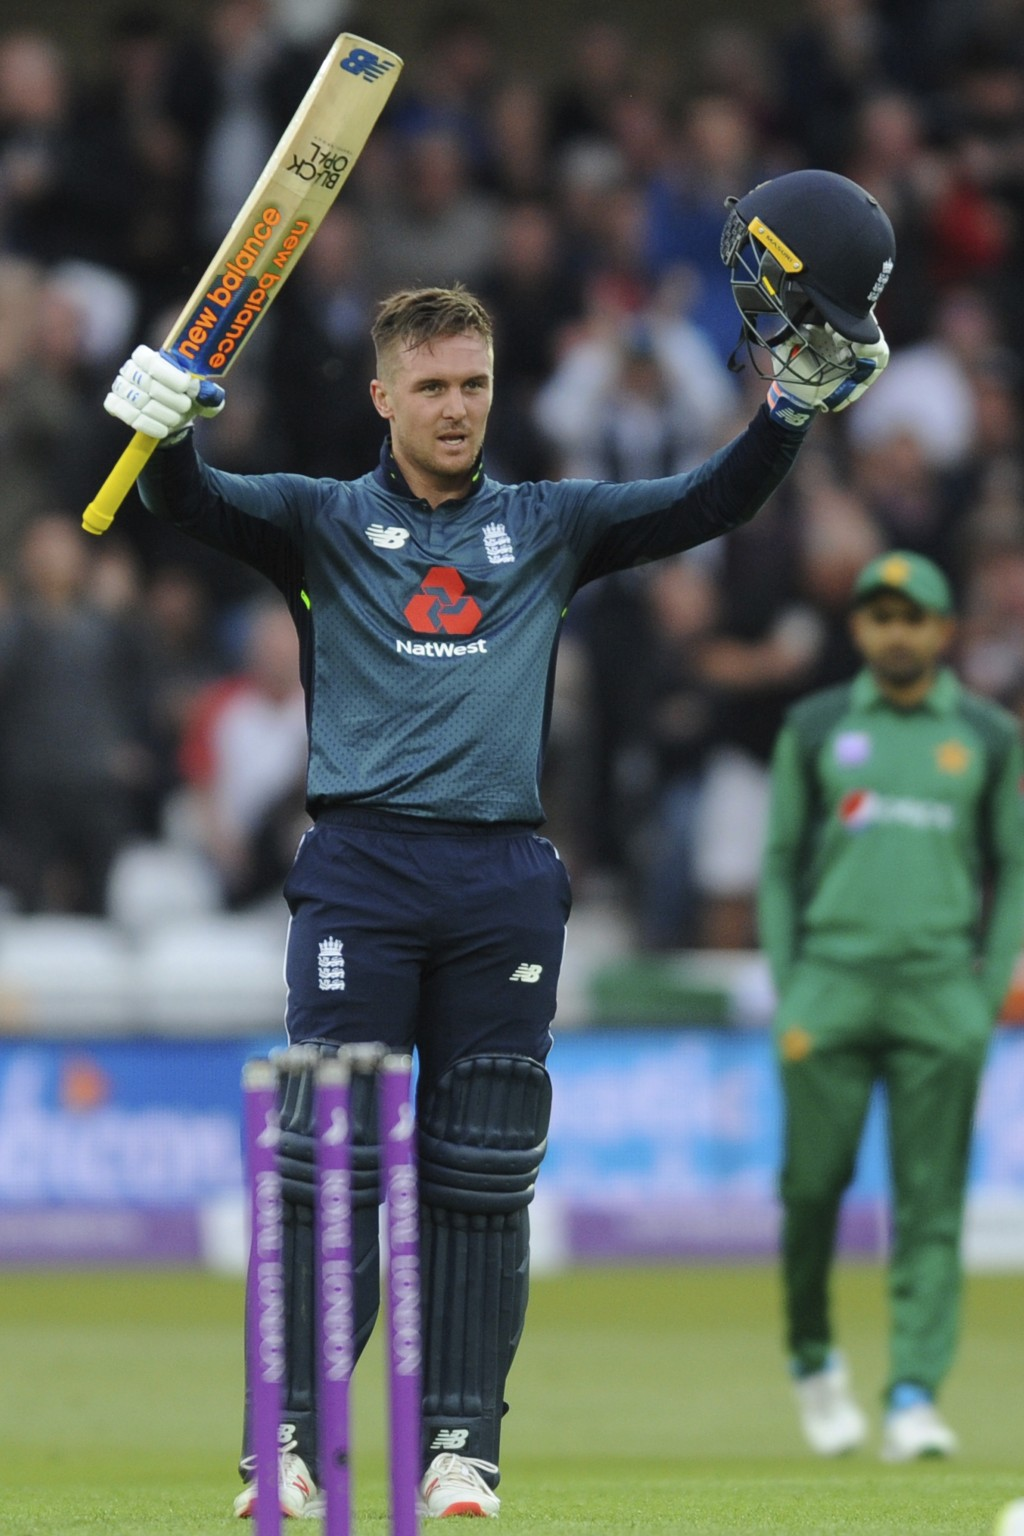 England's Jason Roy celebrates scoring a century during the Fourth One Day International cricket match between England and Pakistan at Trent Bridge in